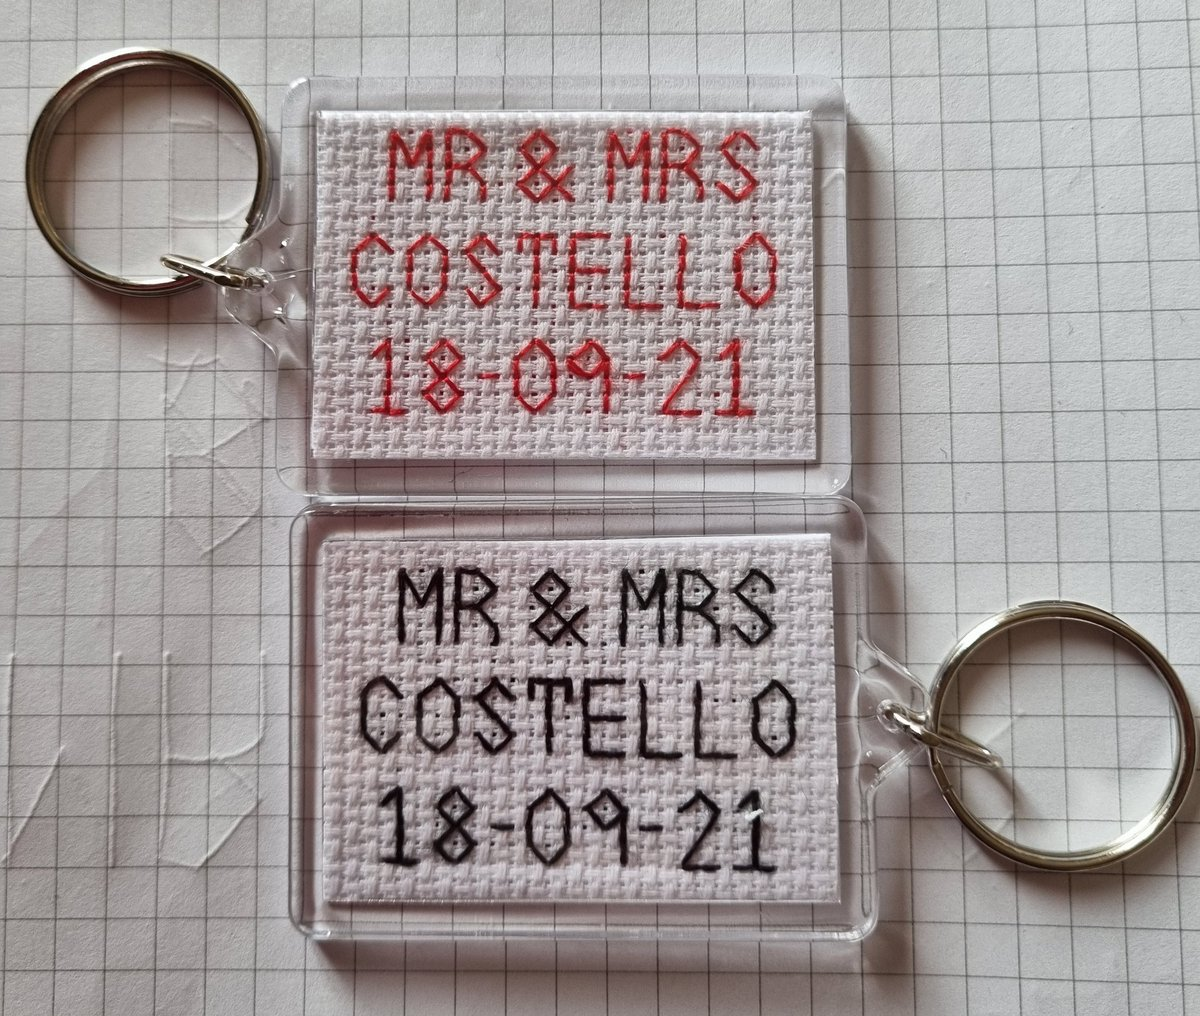 Personalised 'Mr & Mrs' keyrings with date.  These would make a great gift for  newly weds or wedding favours!  £4.00 (free UK postage). Buy 2 get 15% off.  #mrmrs #keyring #wedding #weddinggift #weddingfavour #jaykaycraftsdundee